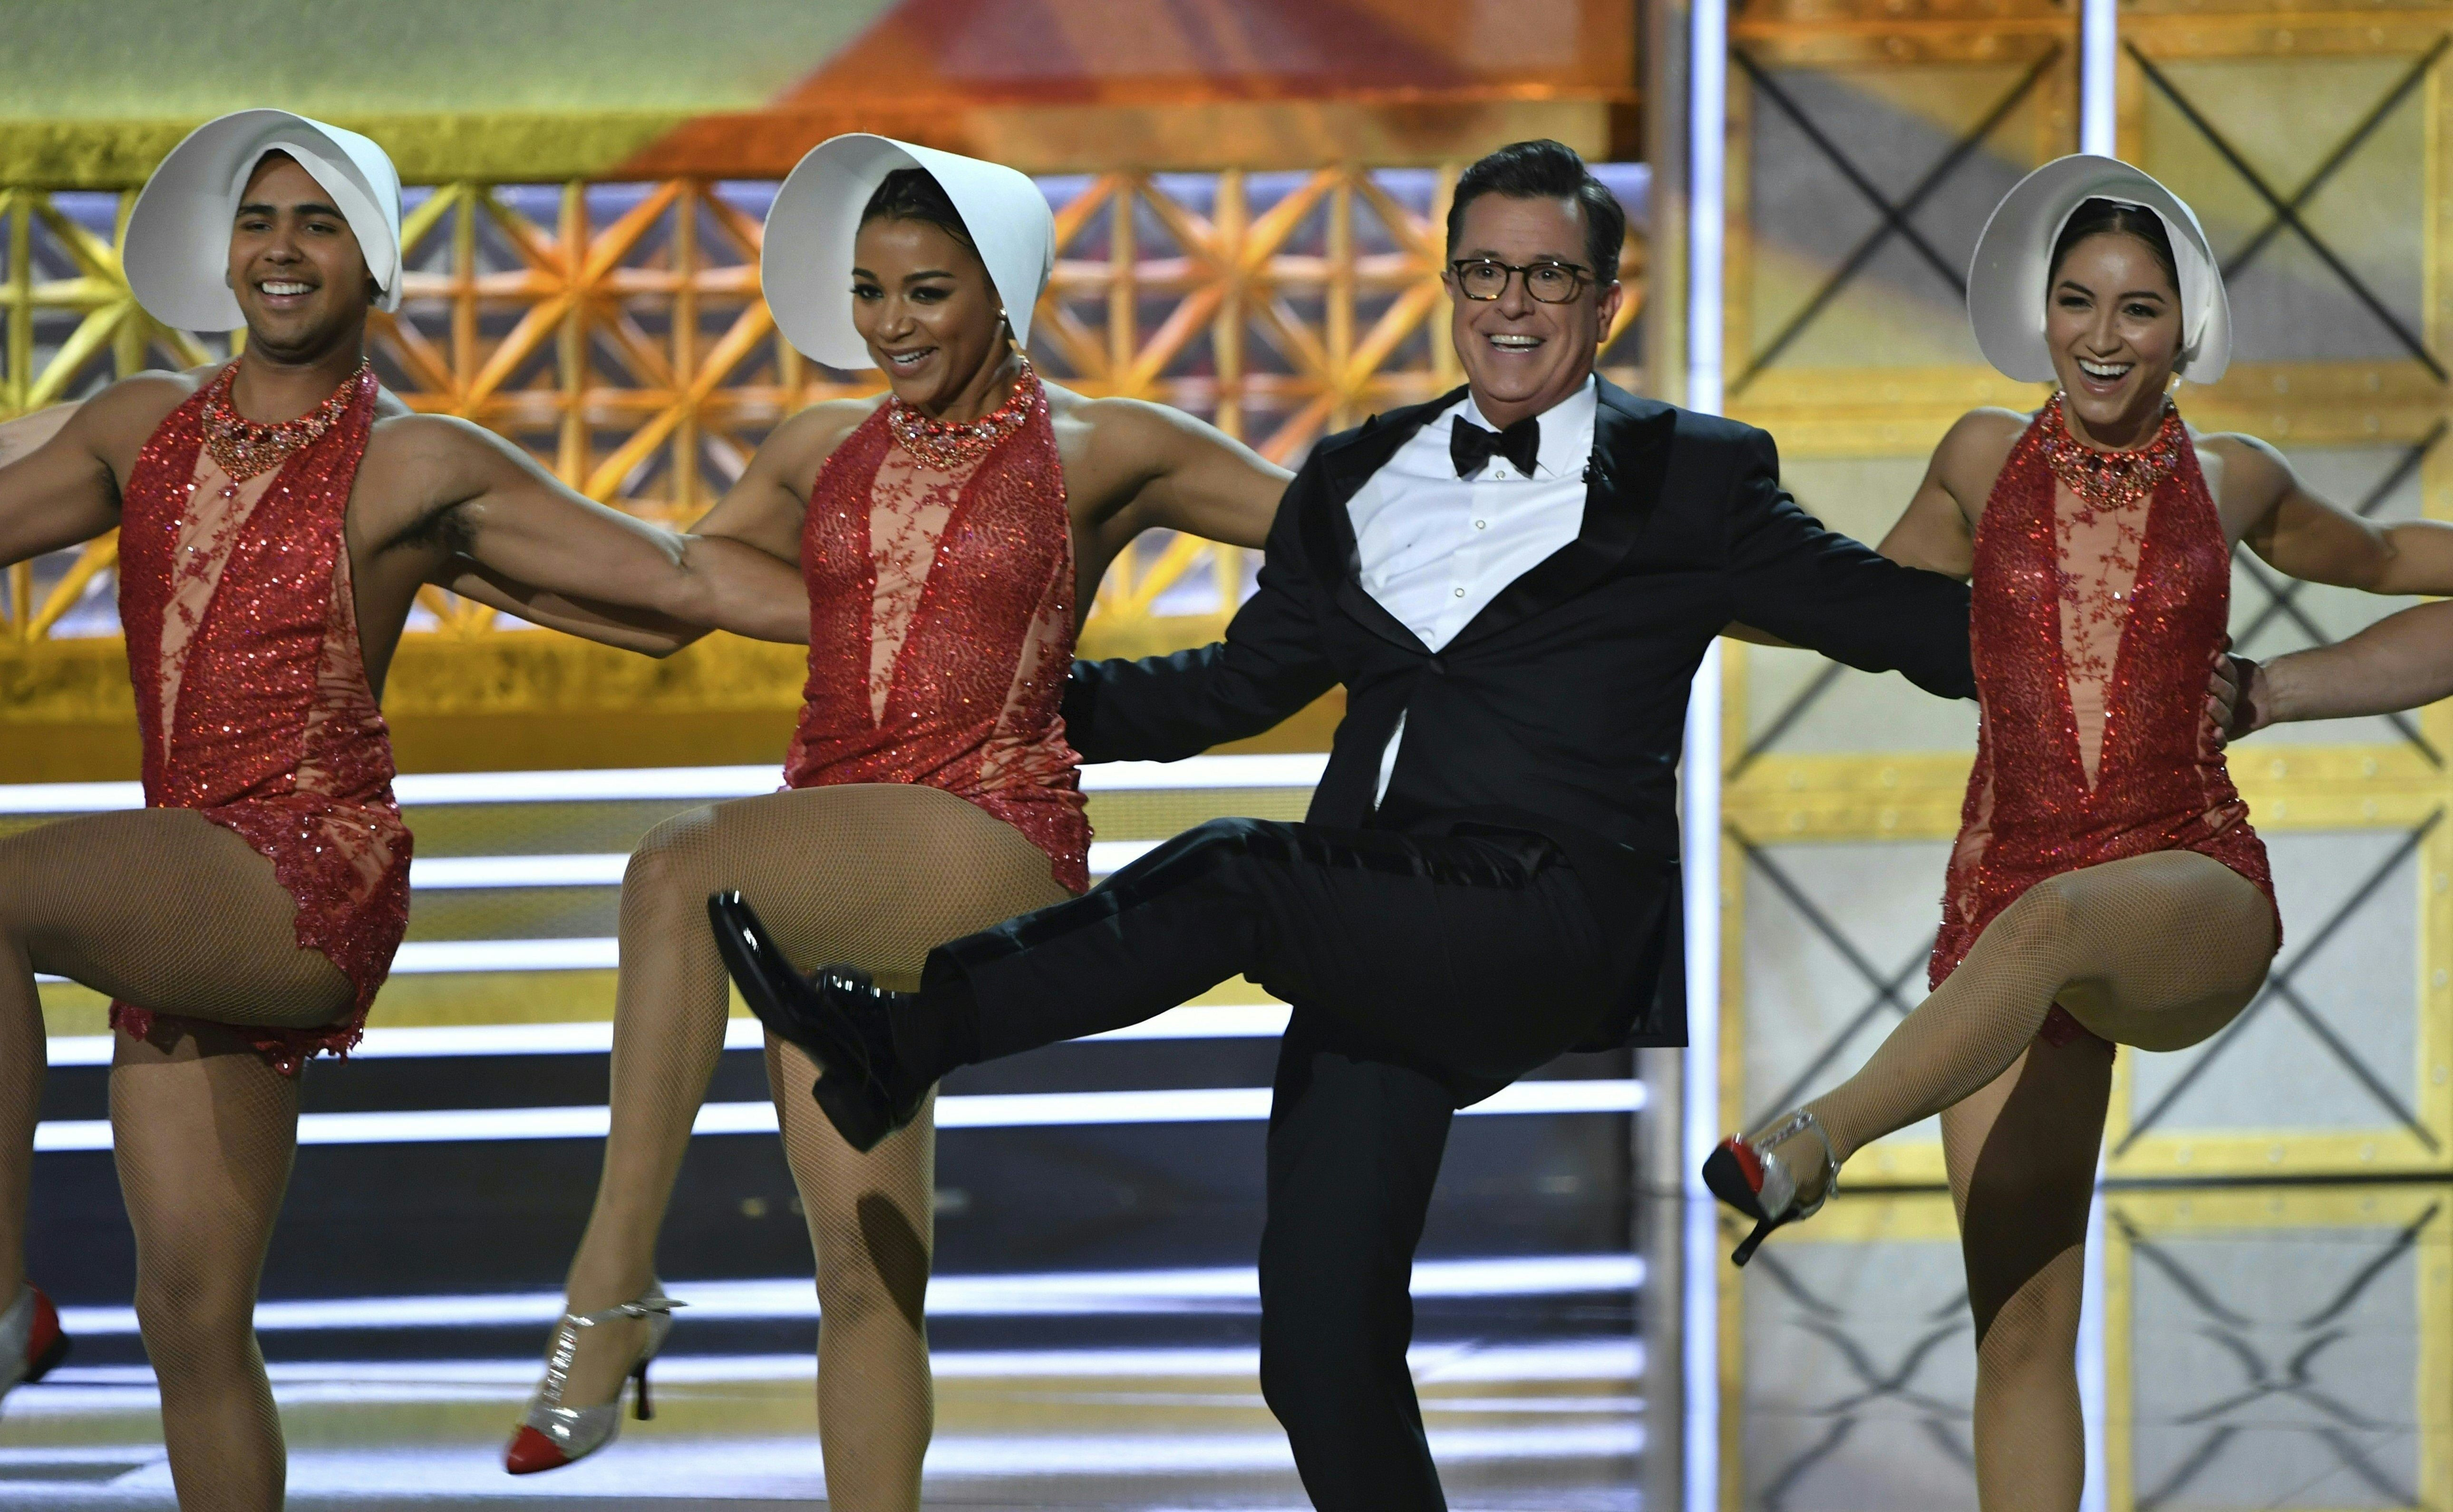 Emmys 2017 Gets Political With Speeches And Awards